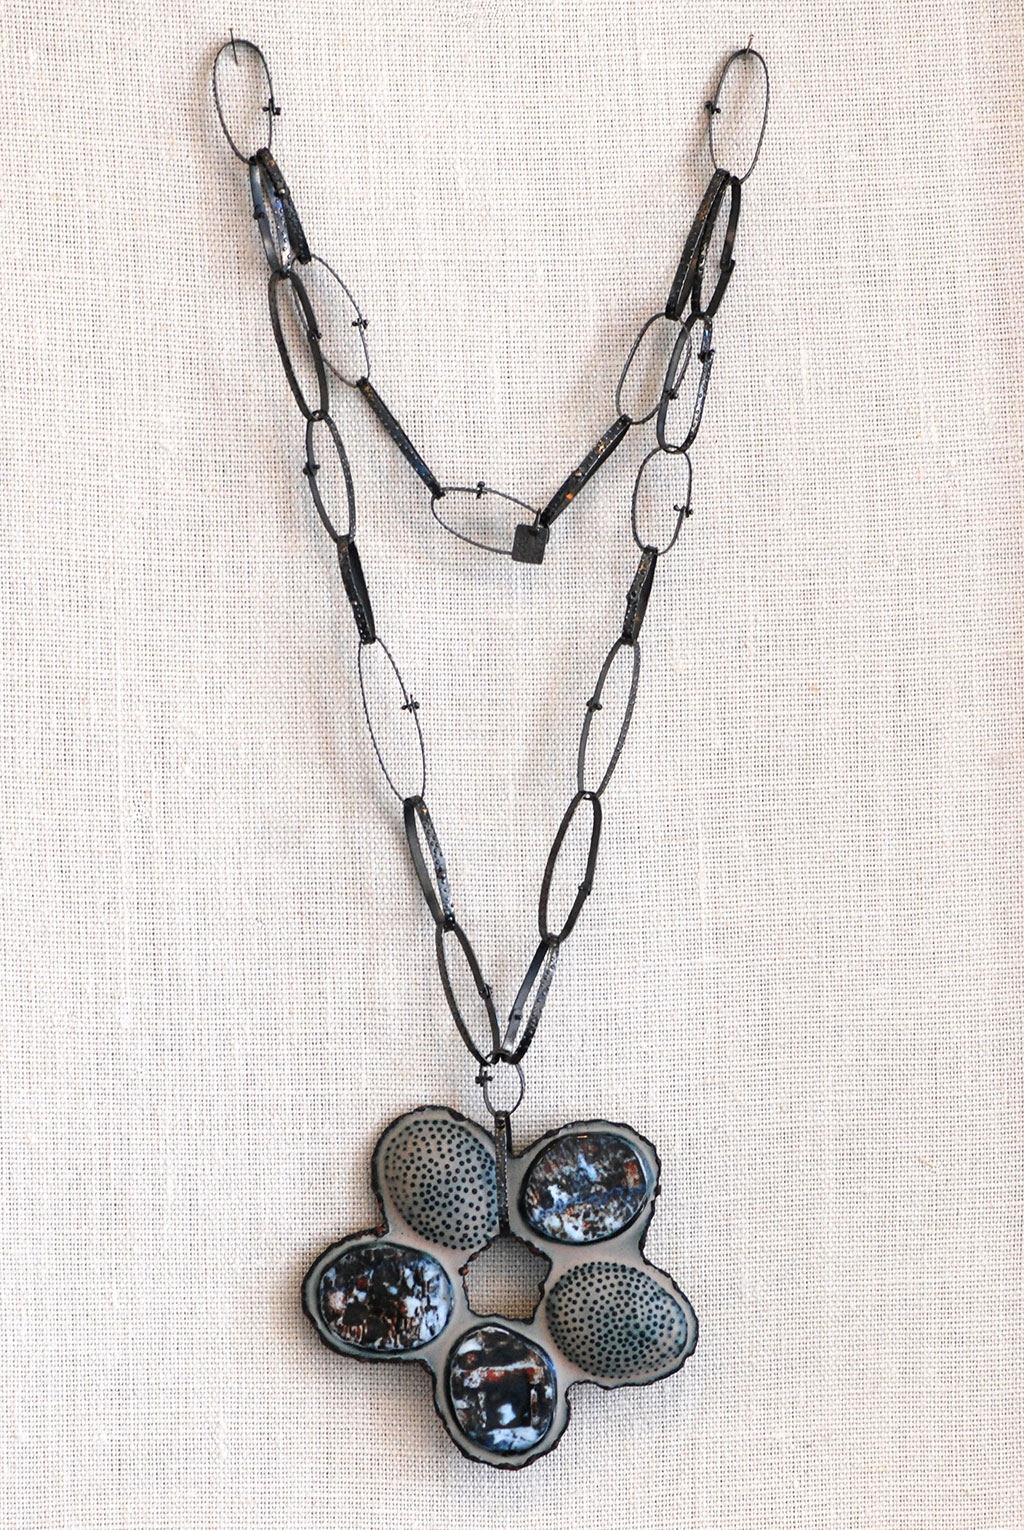 Kathleen Browne, Repair Necklace, 2012